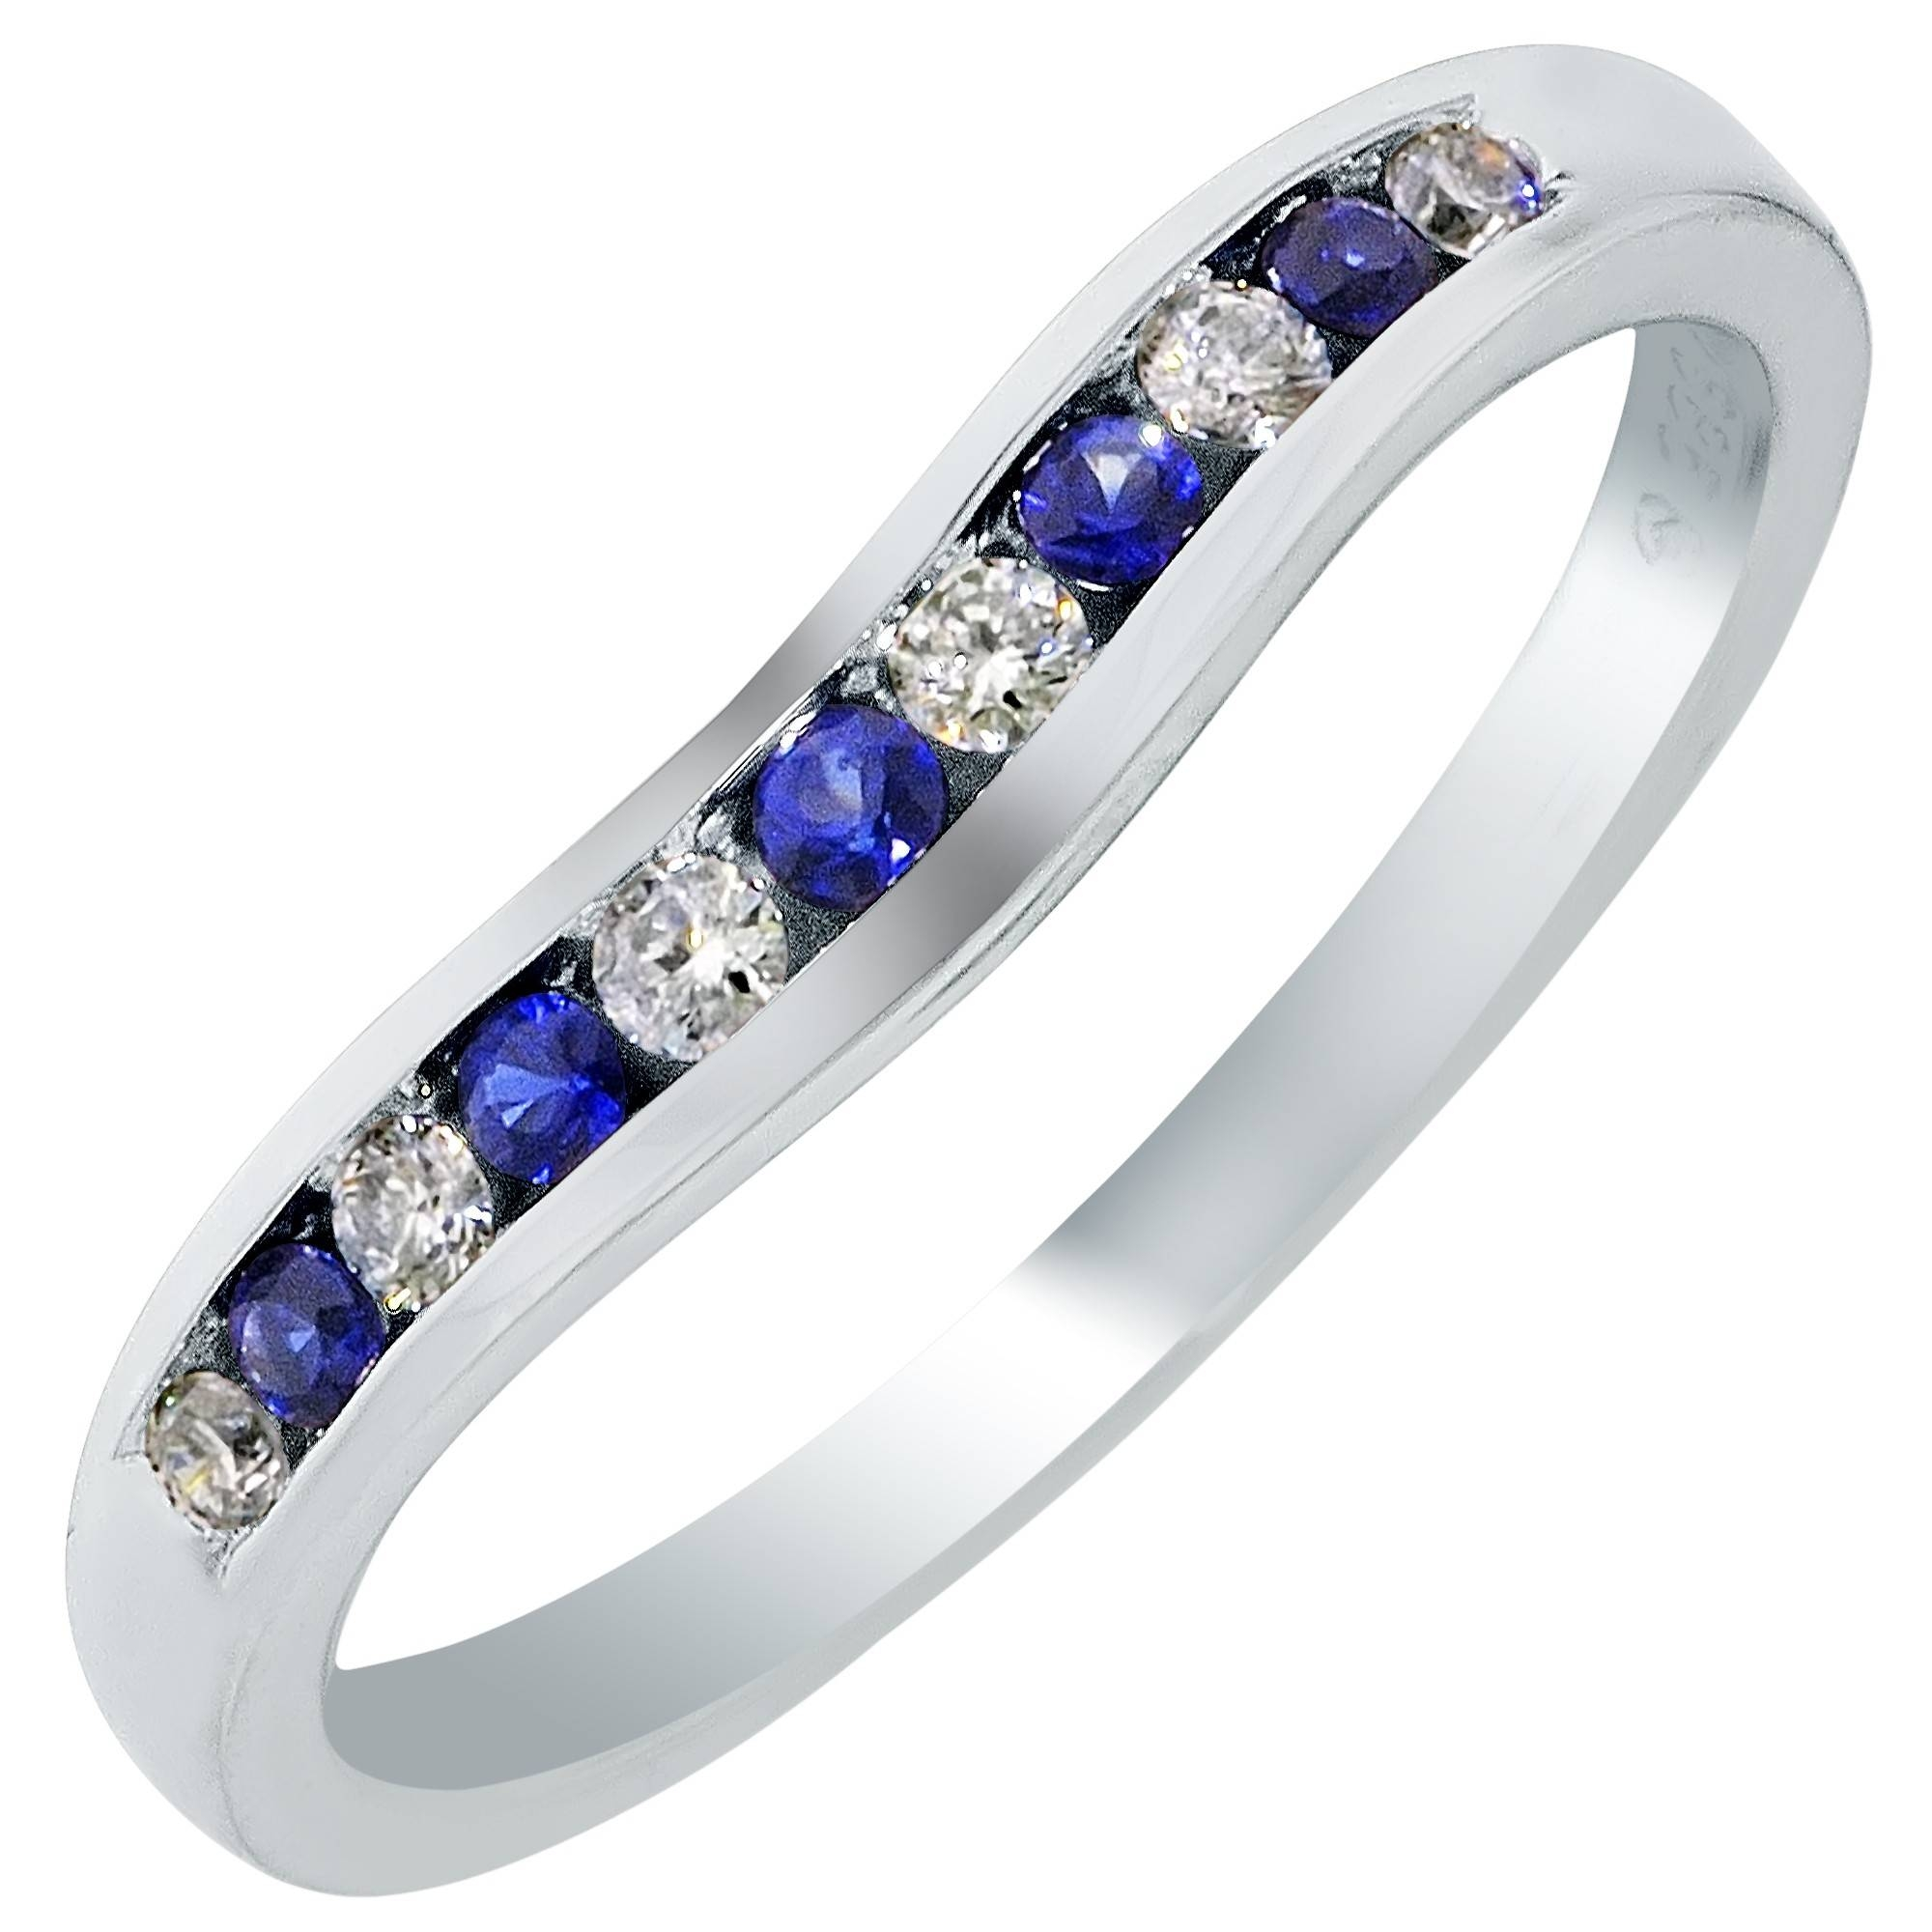 Curved Diamond And Sapphire Wedding Band In 14Kt White Gold (1/4Ct Tw) Throughout Sapphire Wedding Bands (Gallery 11 of 15)